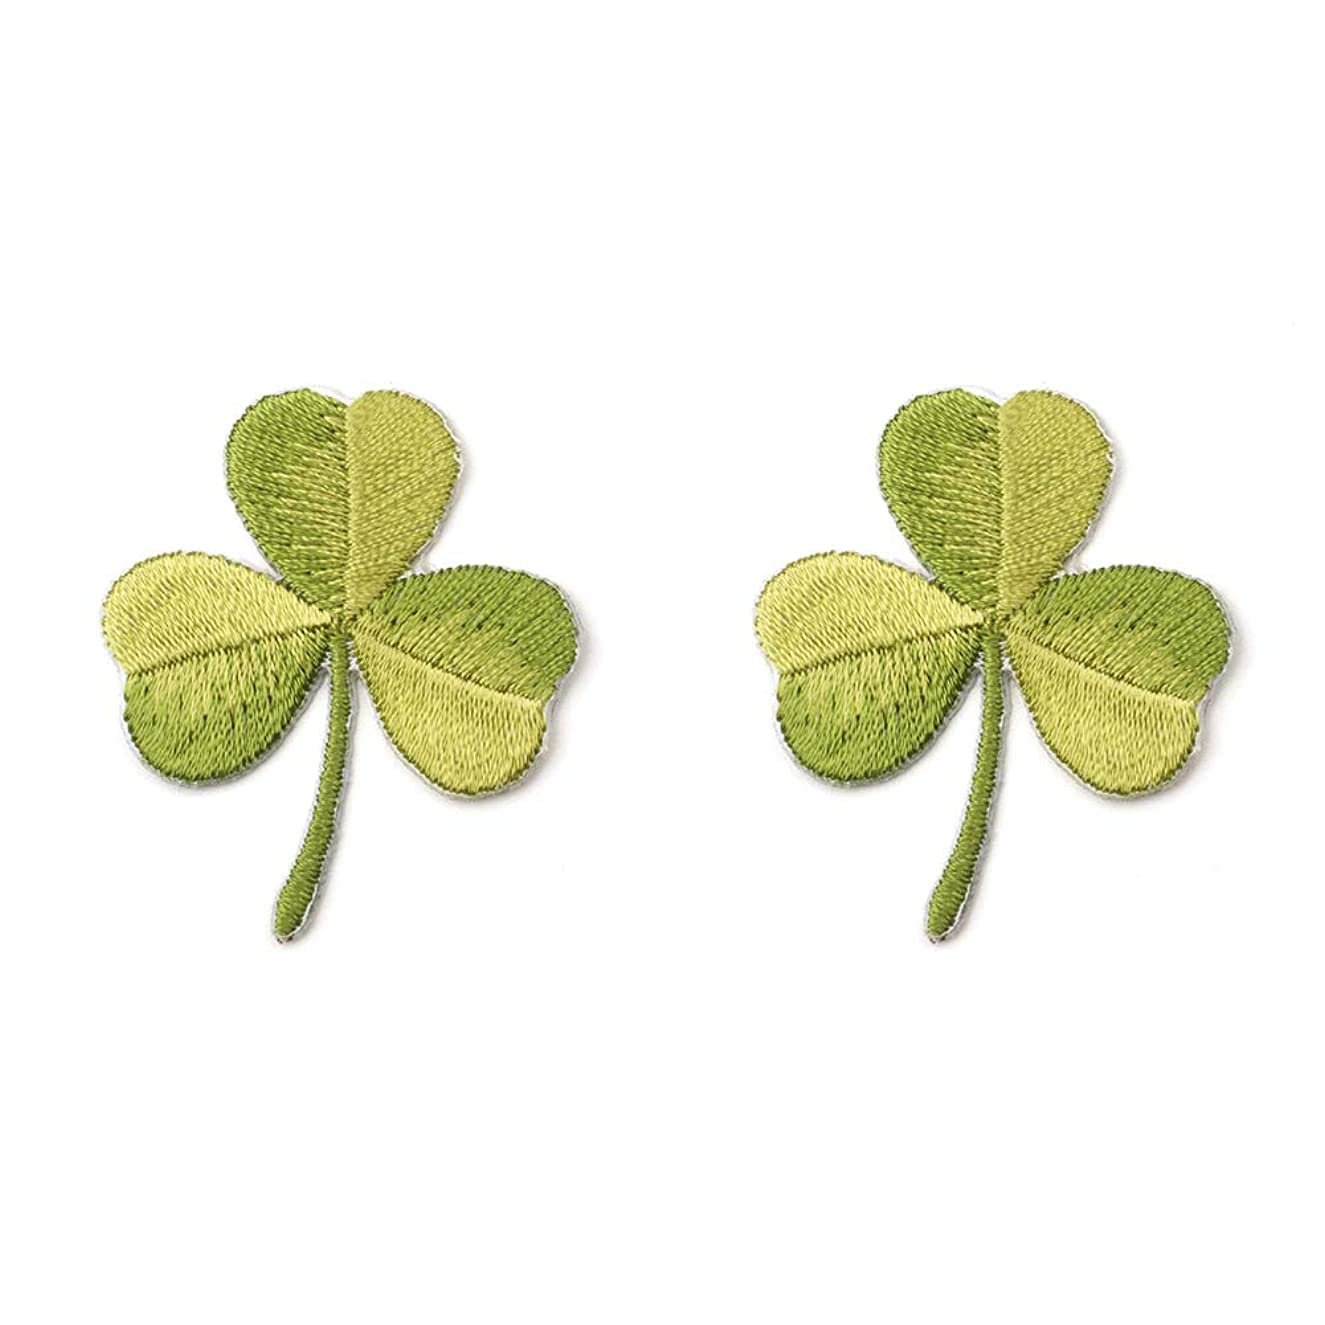 YOUOR 2 Pcs Green Leaf Embroidered Patches Four Leaf Clover Lucky Irish Shamrock Emblem Iron On or Sew On Patches (Three Leaf)